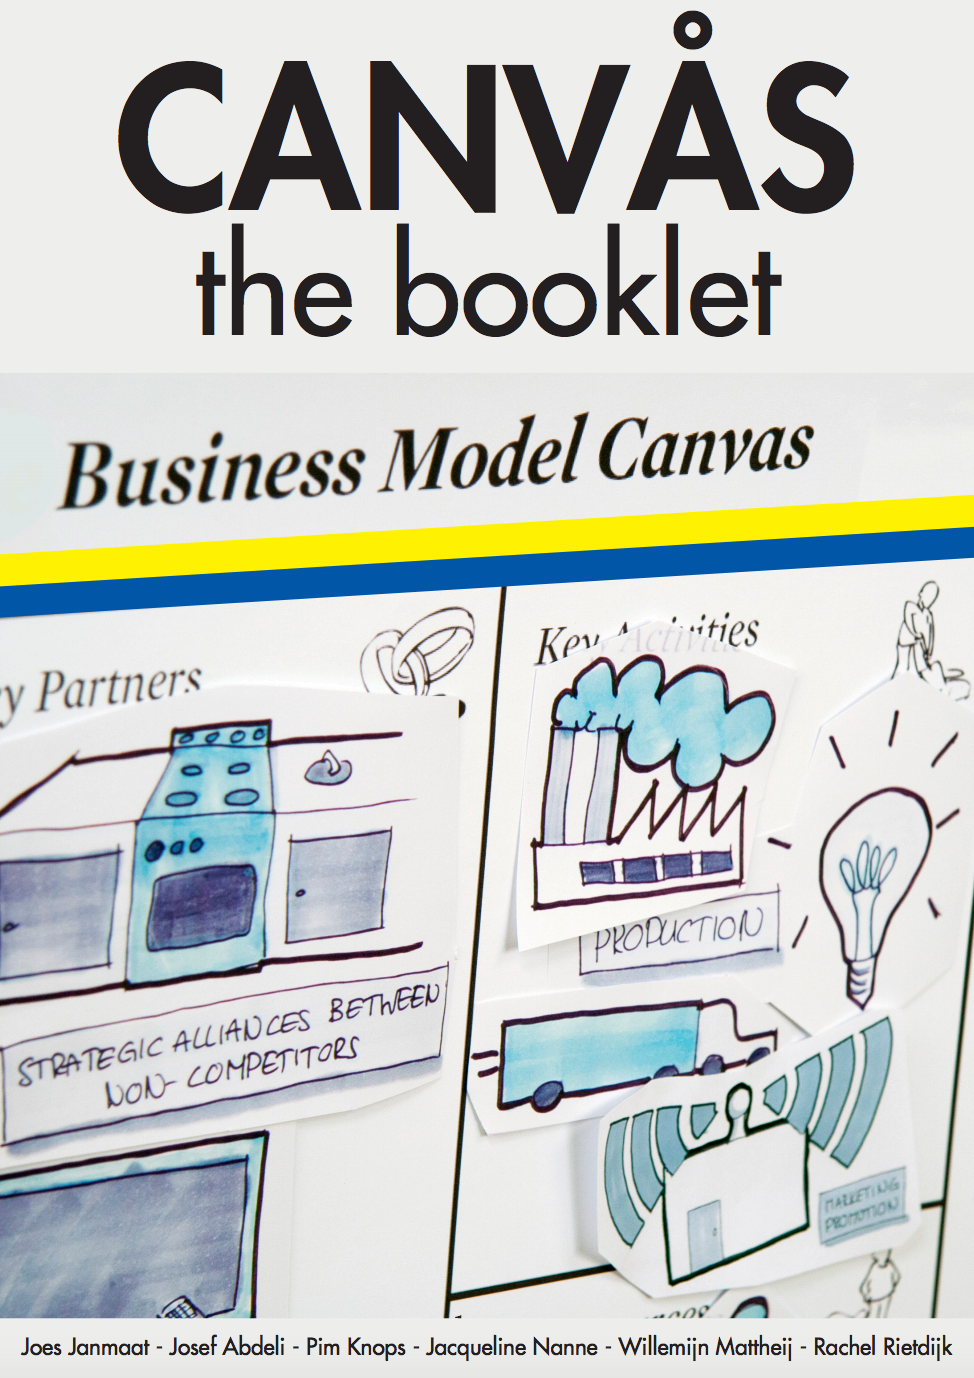 Business model canvas ikea visual models pinterest business business model canvas ikea malvernweather Images